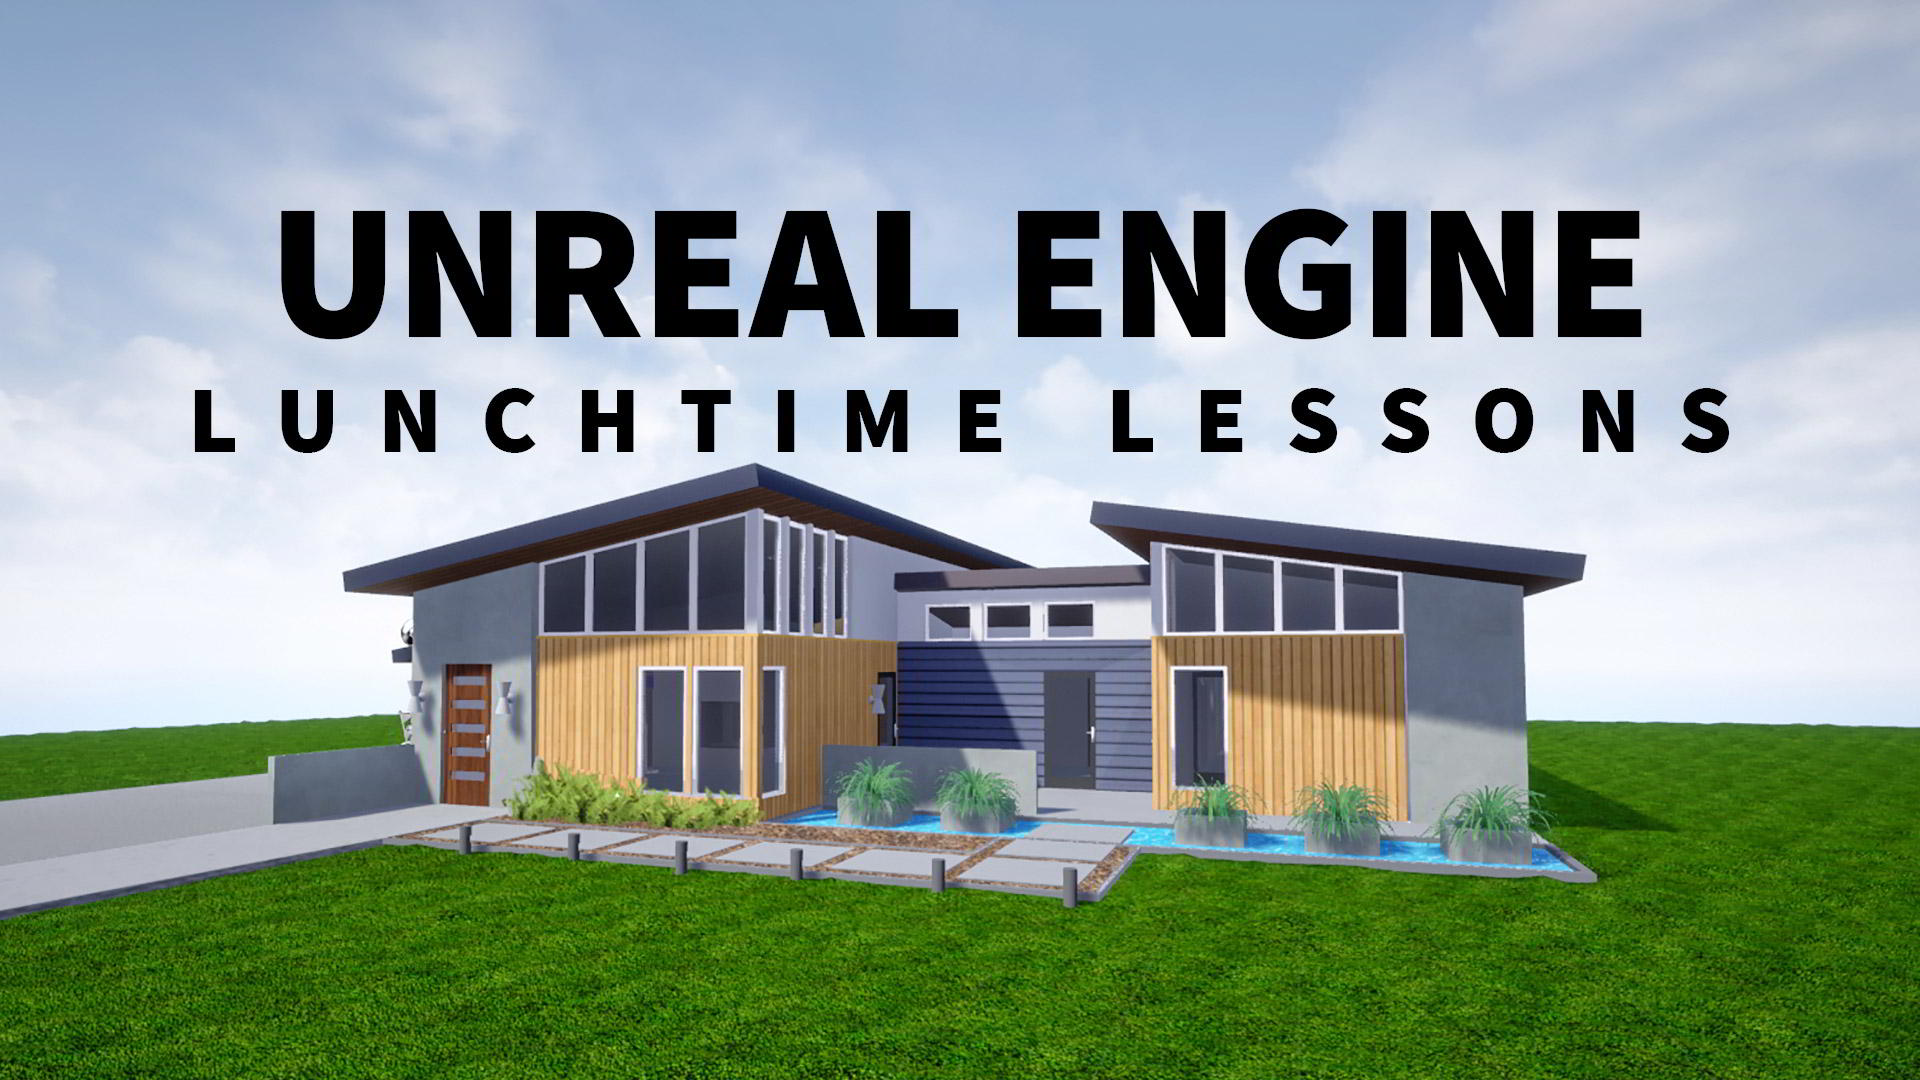 Unreal Engine: Lunchtime Lessons free download